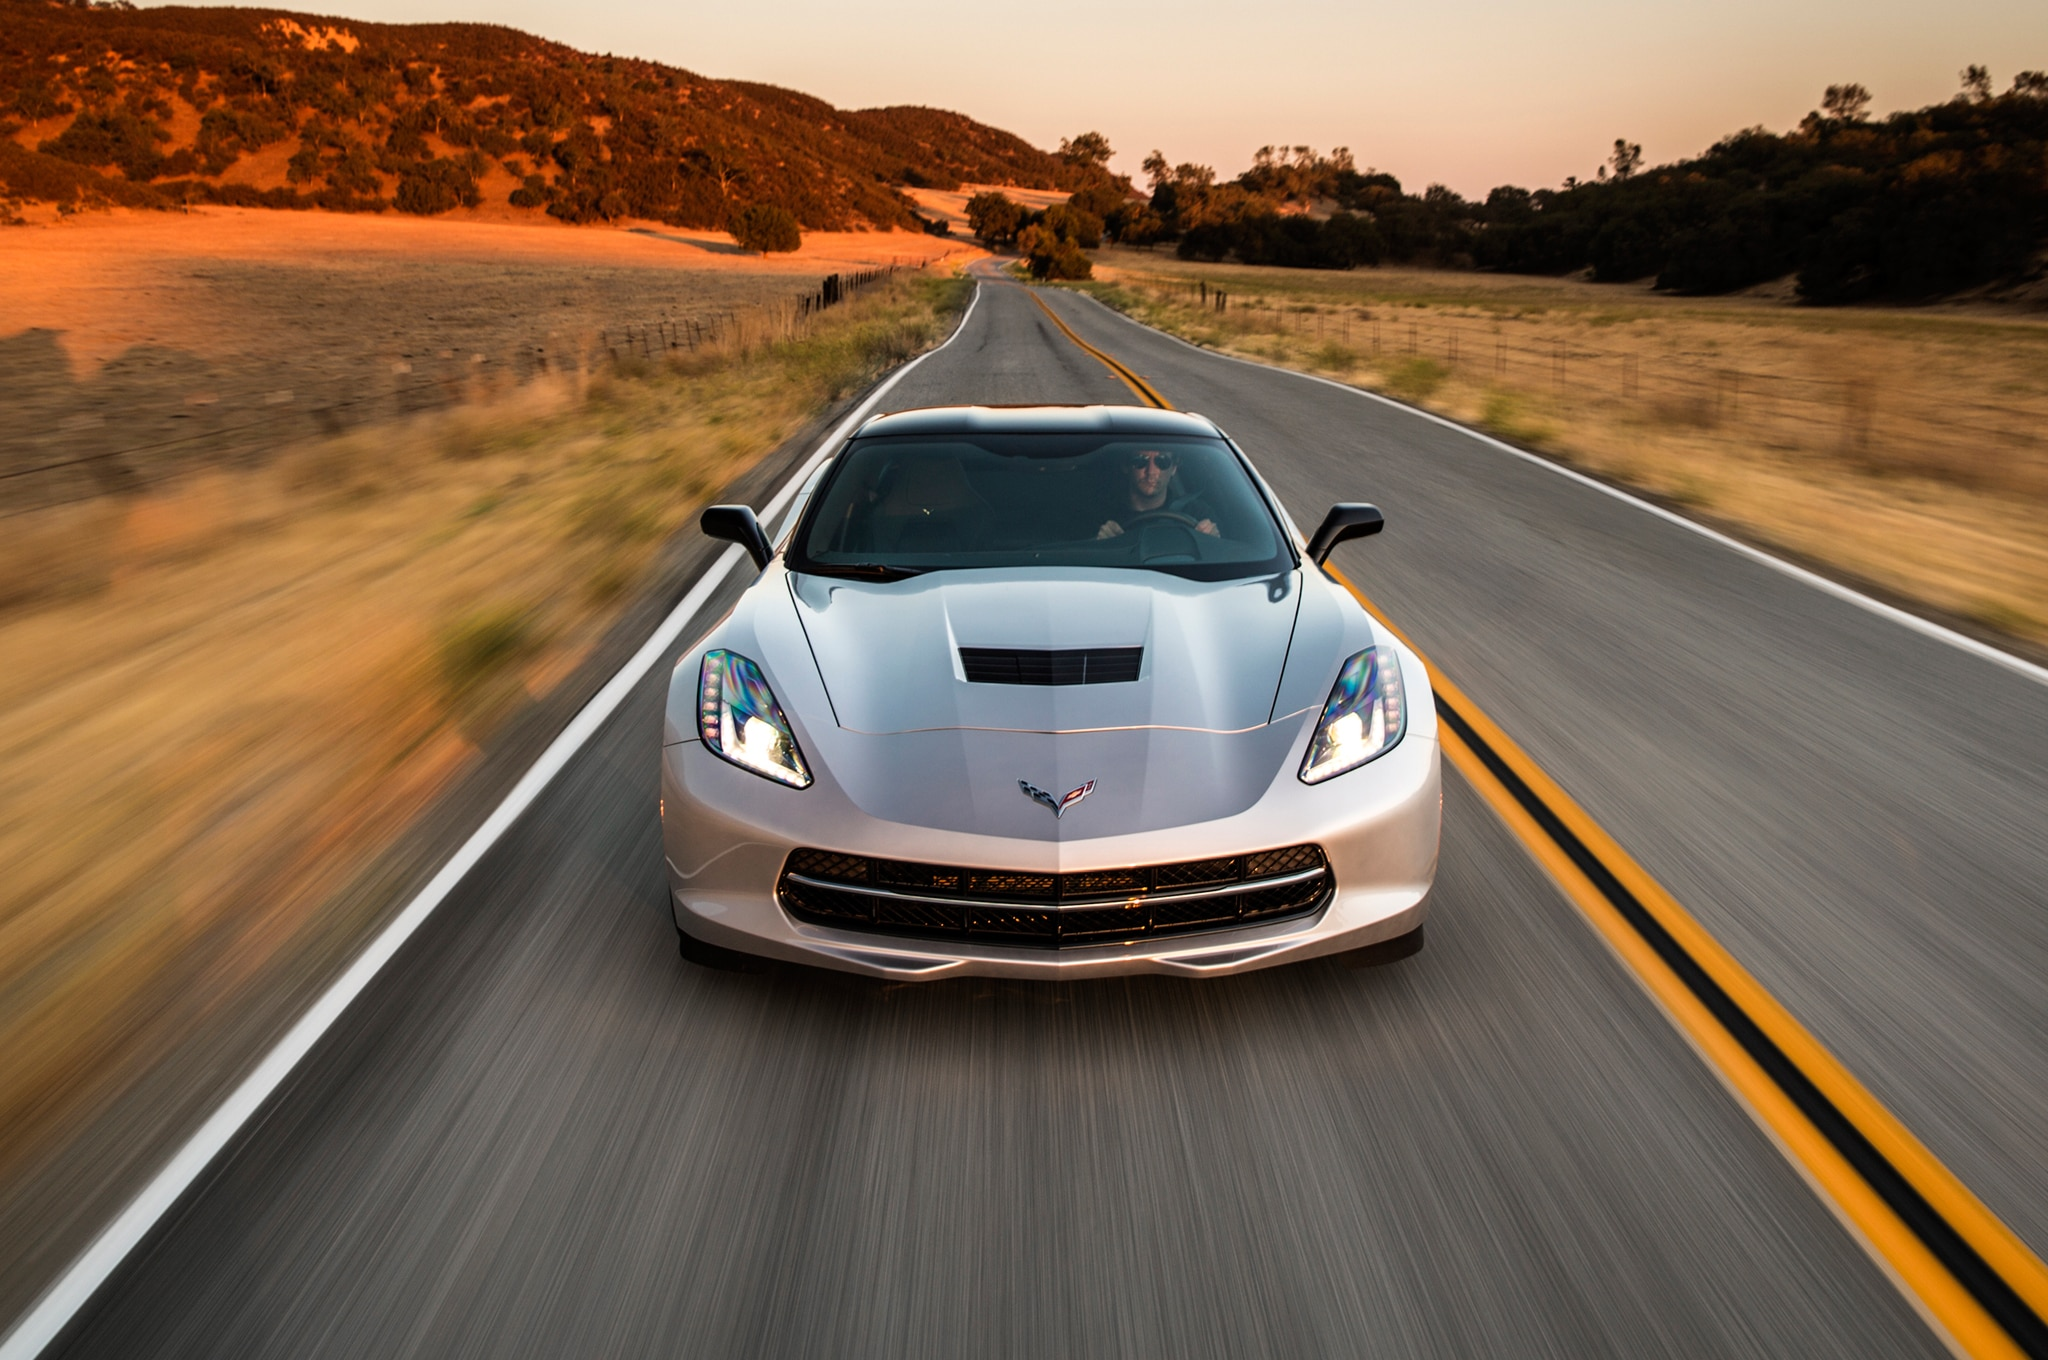 2014 Chevrolet Corvette Stingray Front Driving1